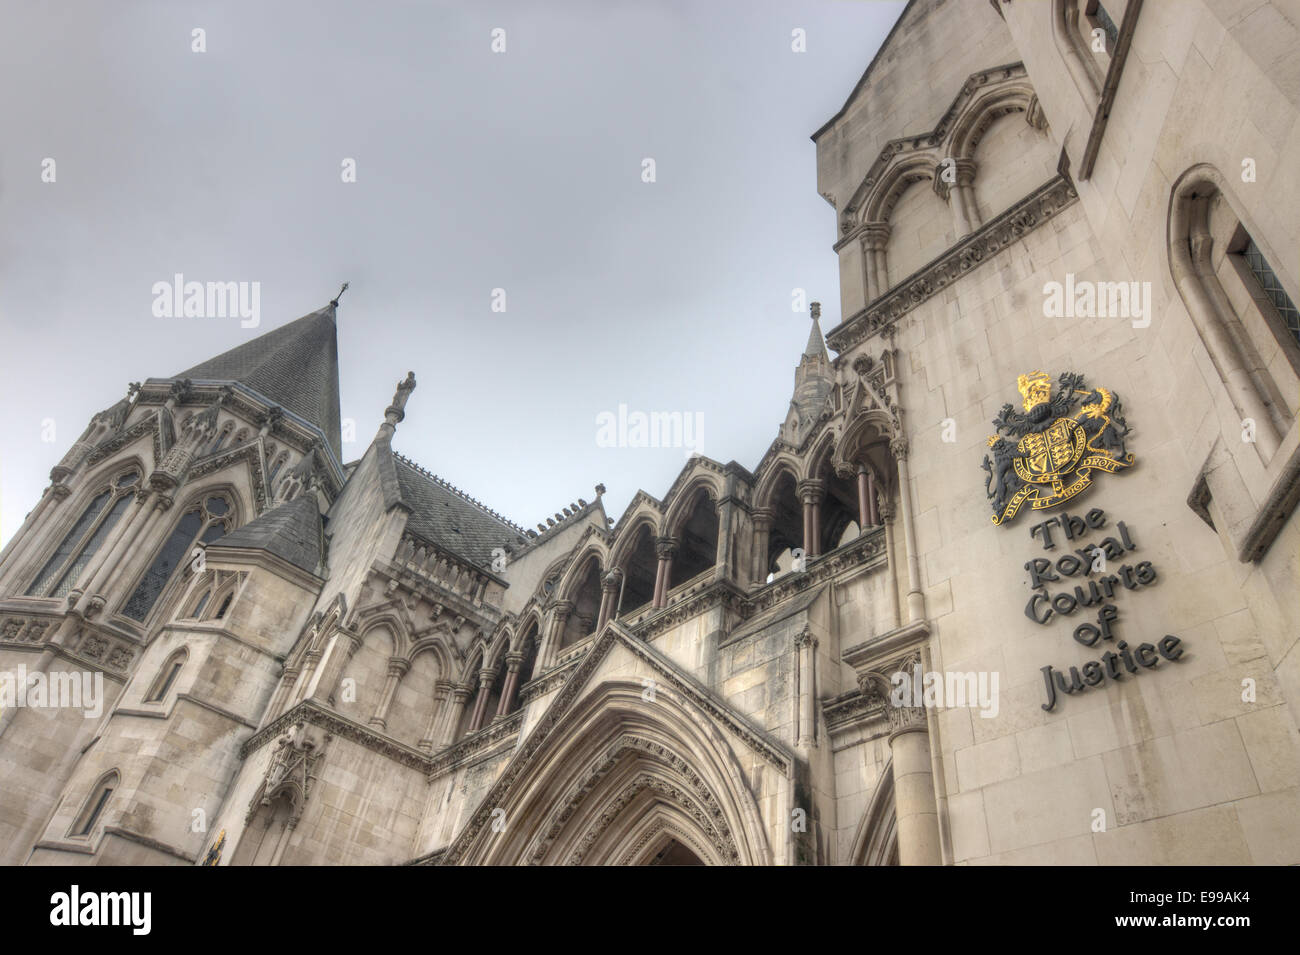 The royal courts of justice  London.  The High Court - Stock Image